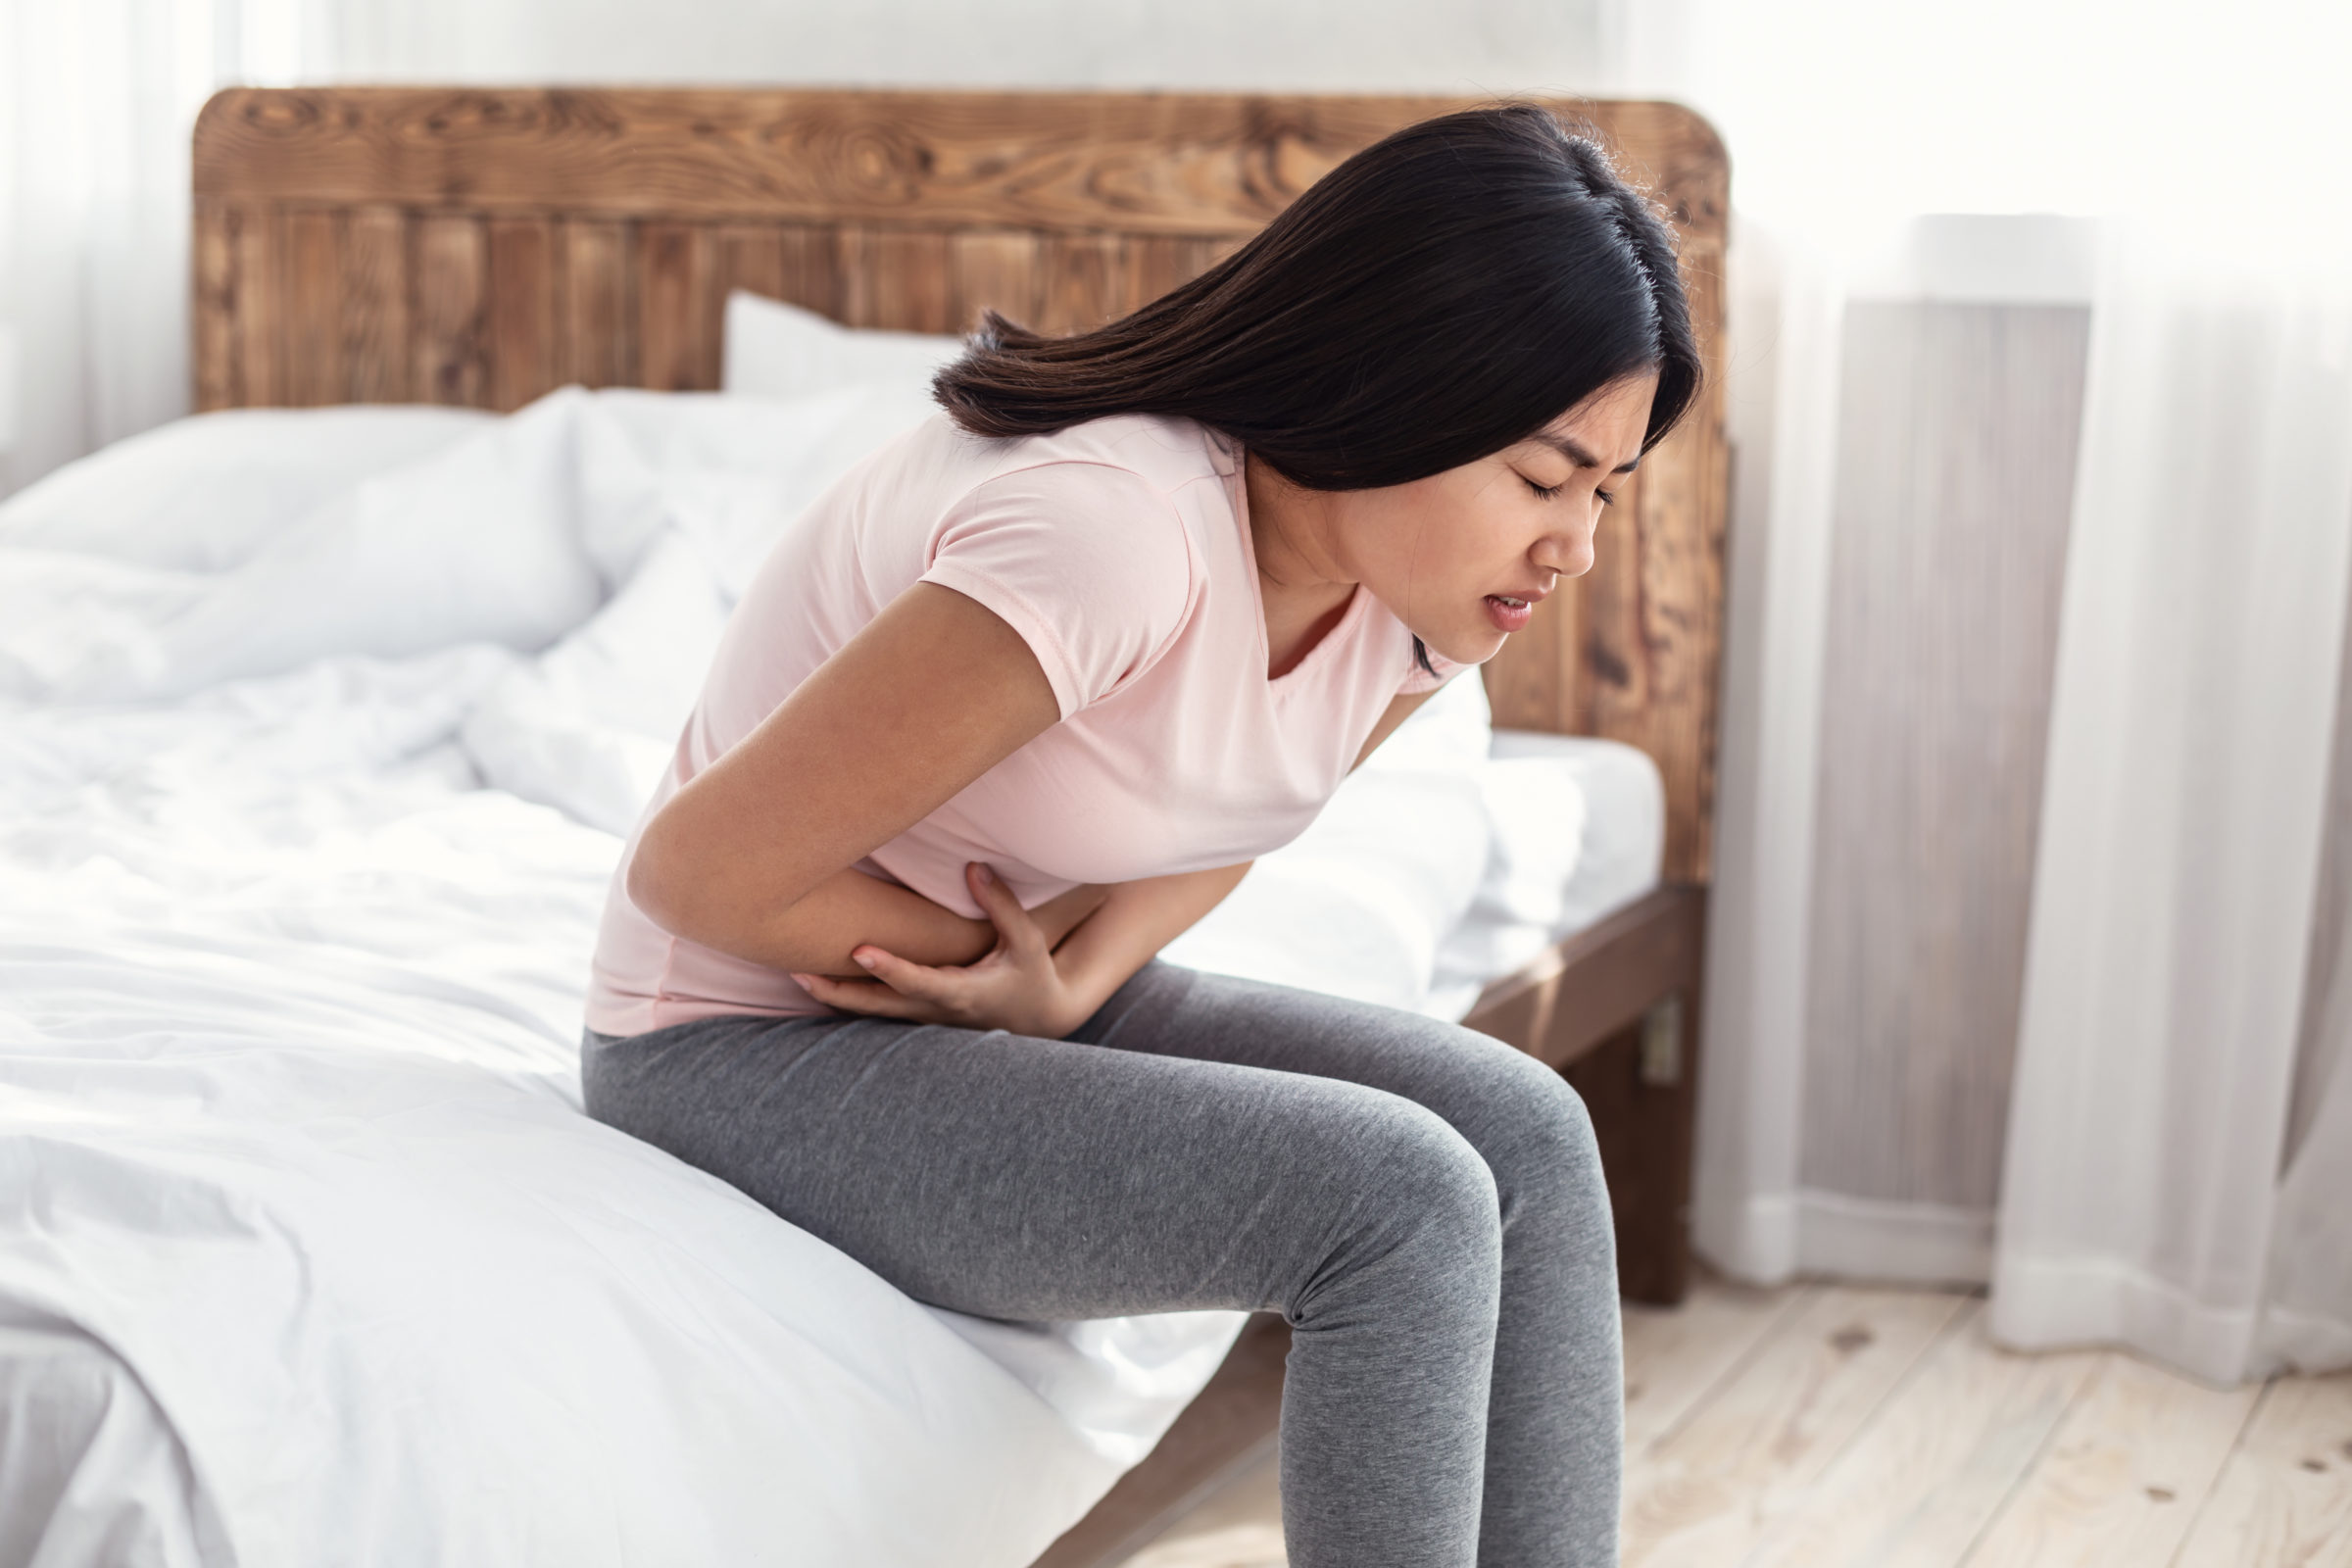 asian woman having stomachache suffering from pain G2MFNZB